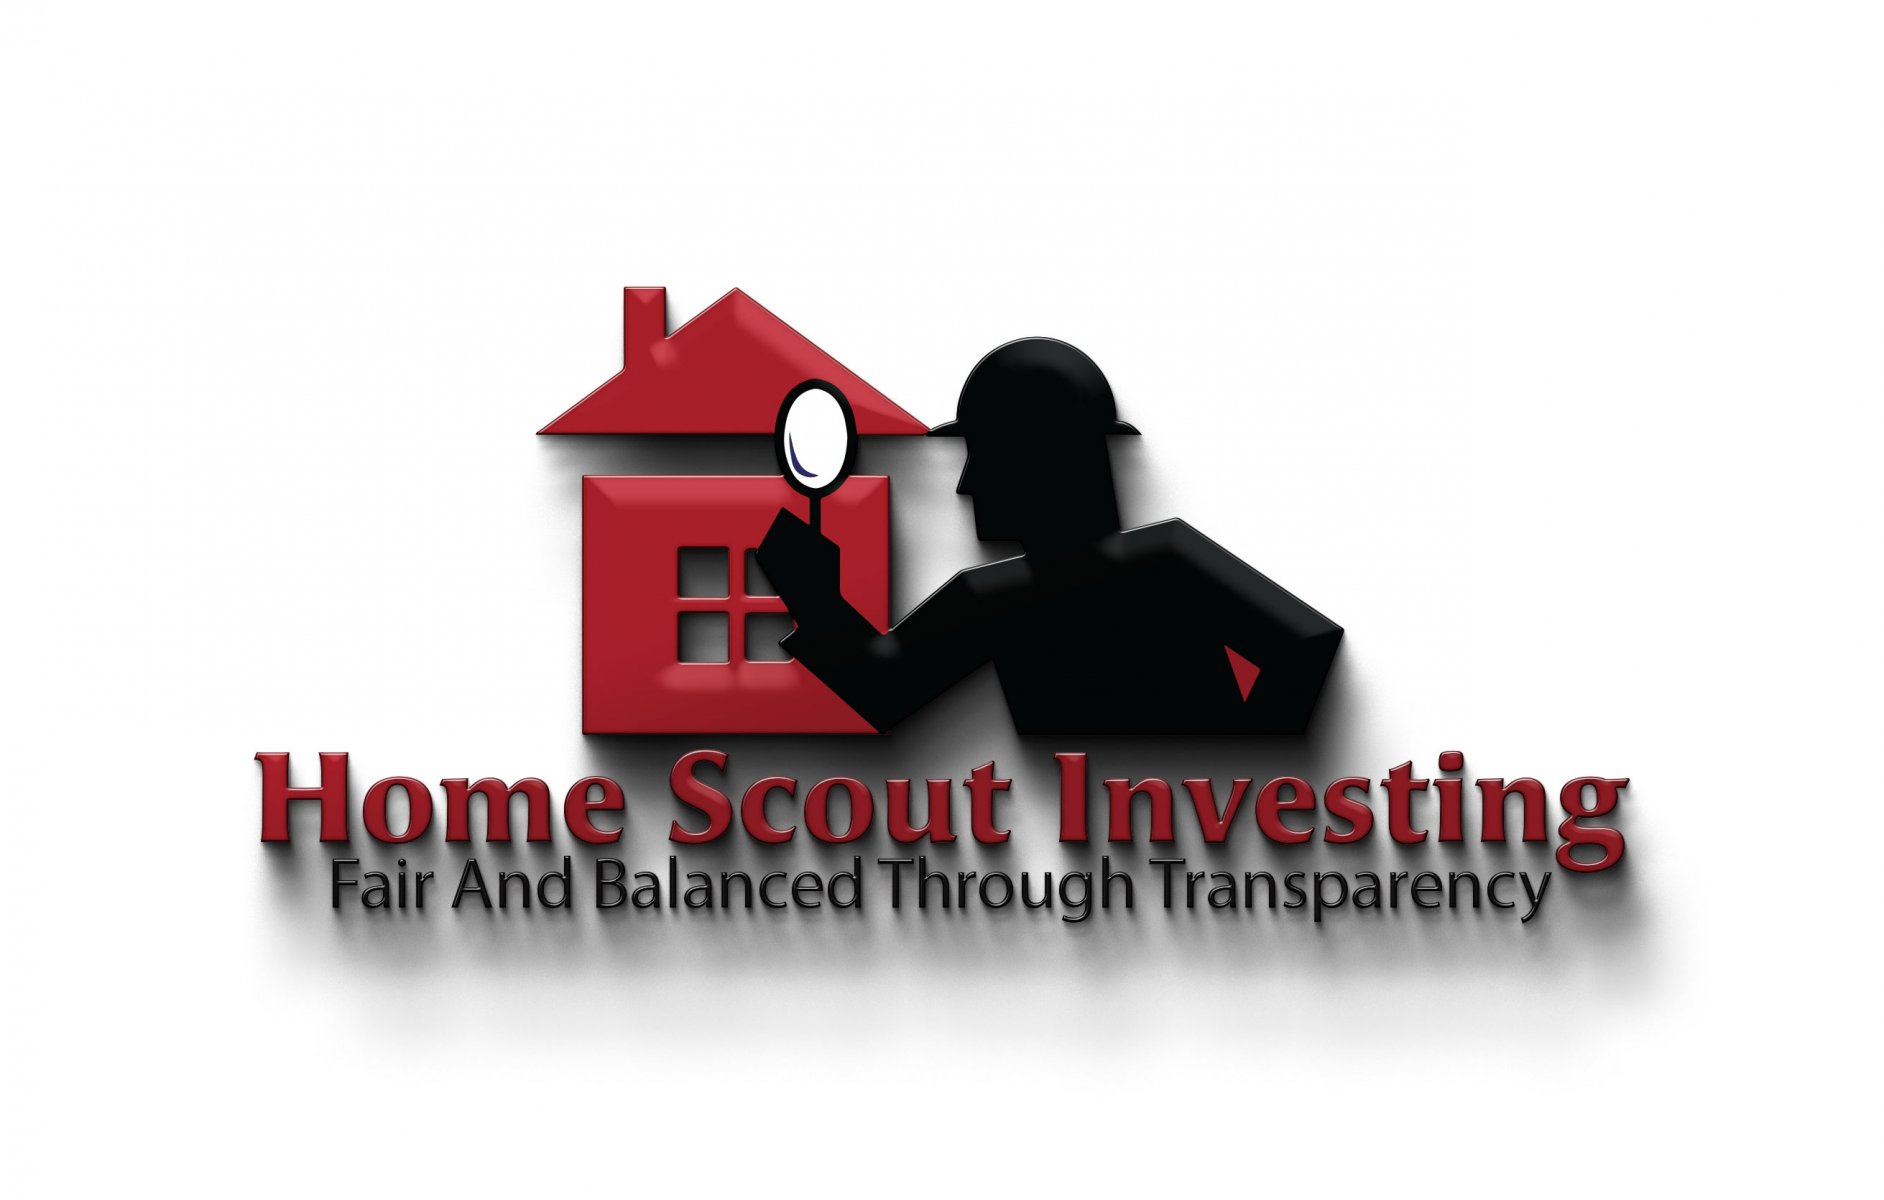 Home Scout Investing LLV